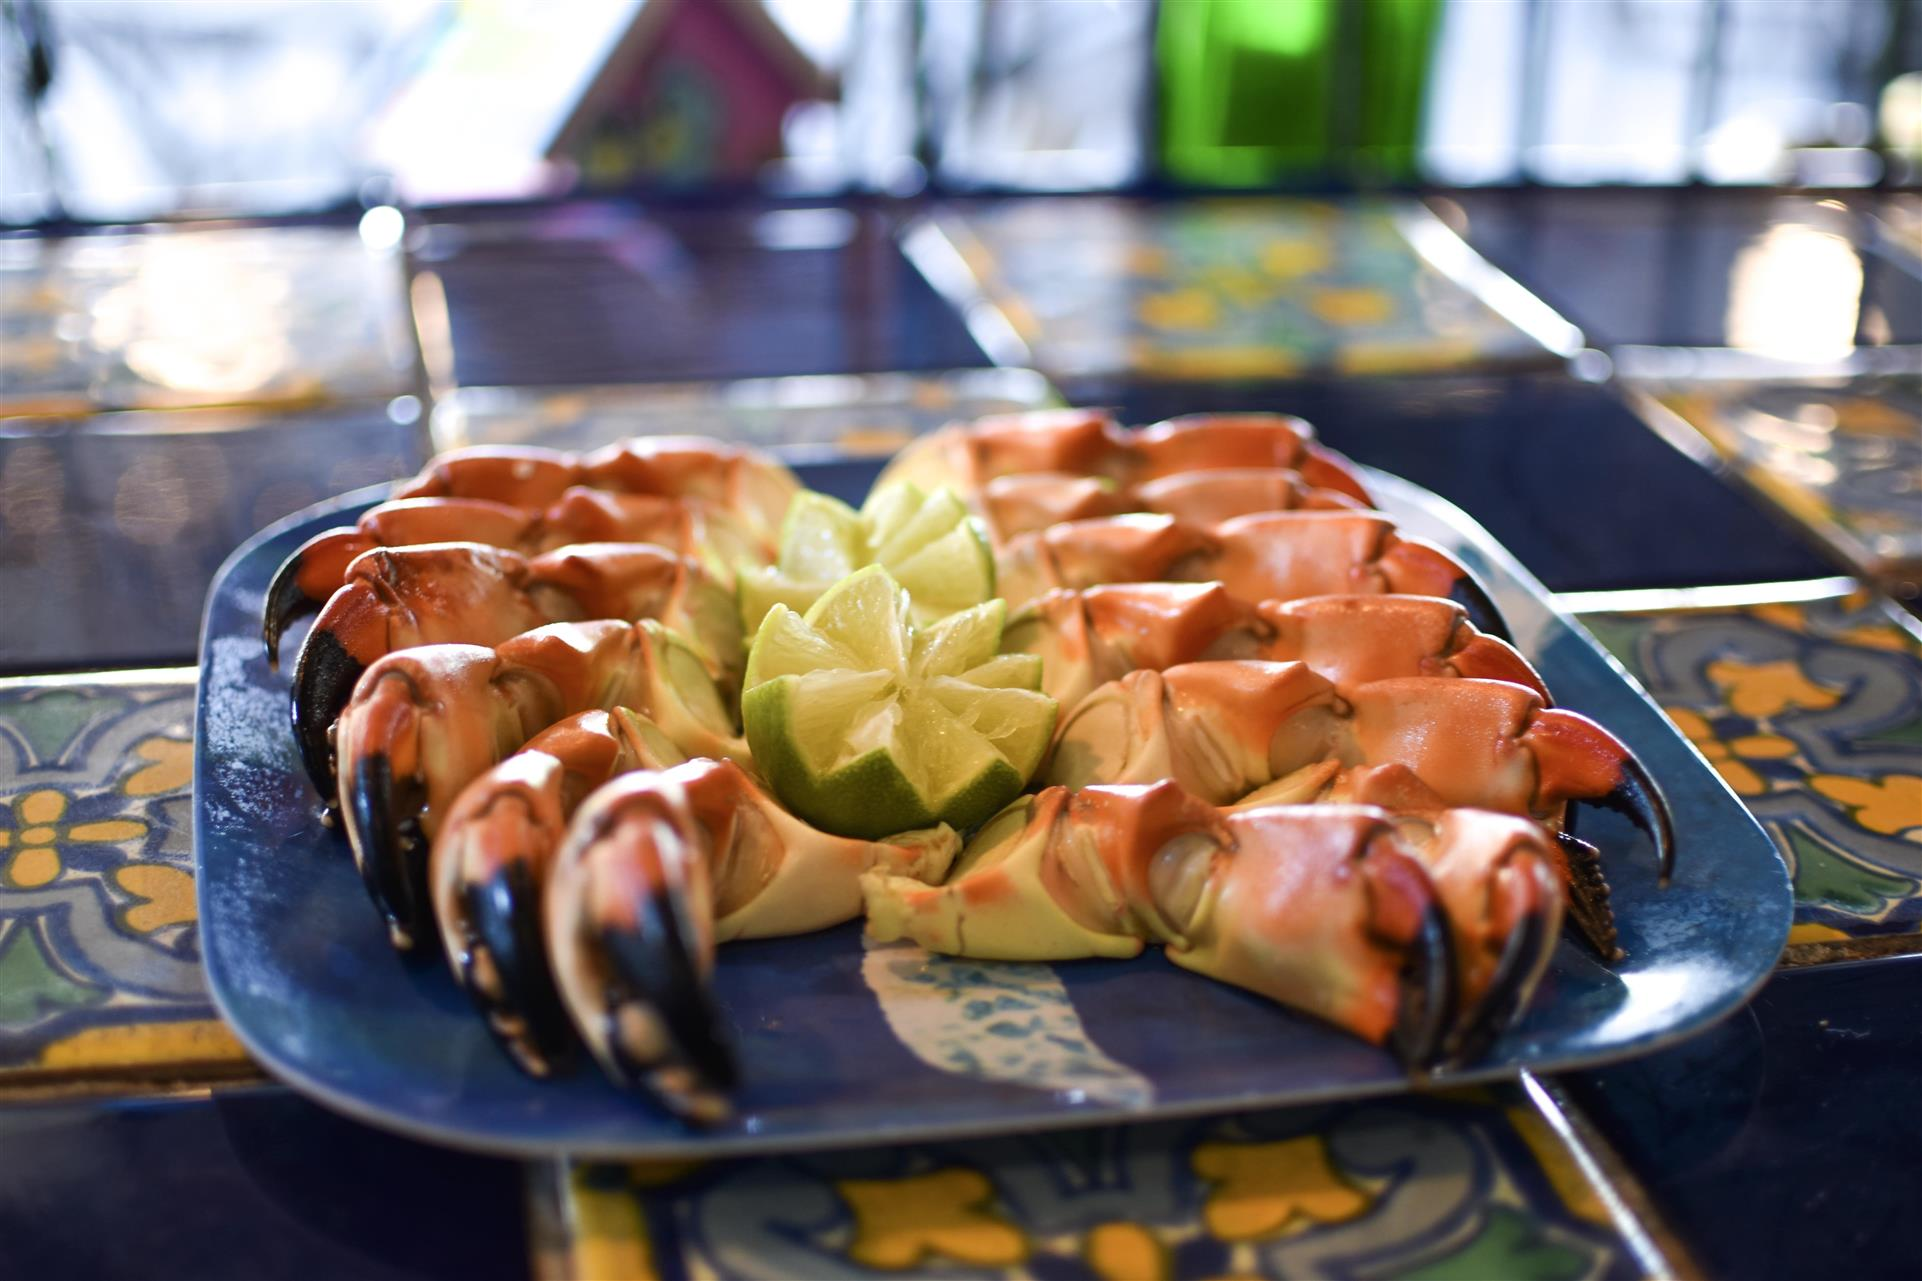 assortment of crab claws with a side of dipping sauce